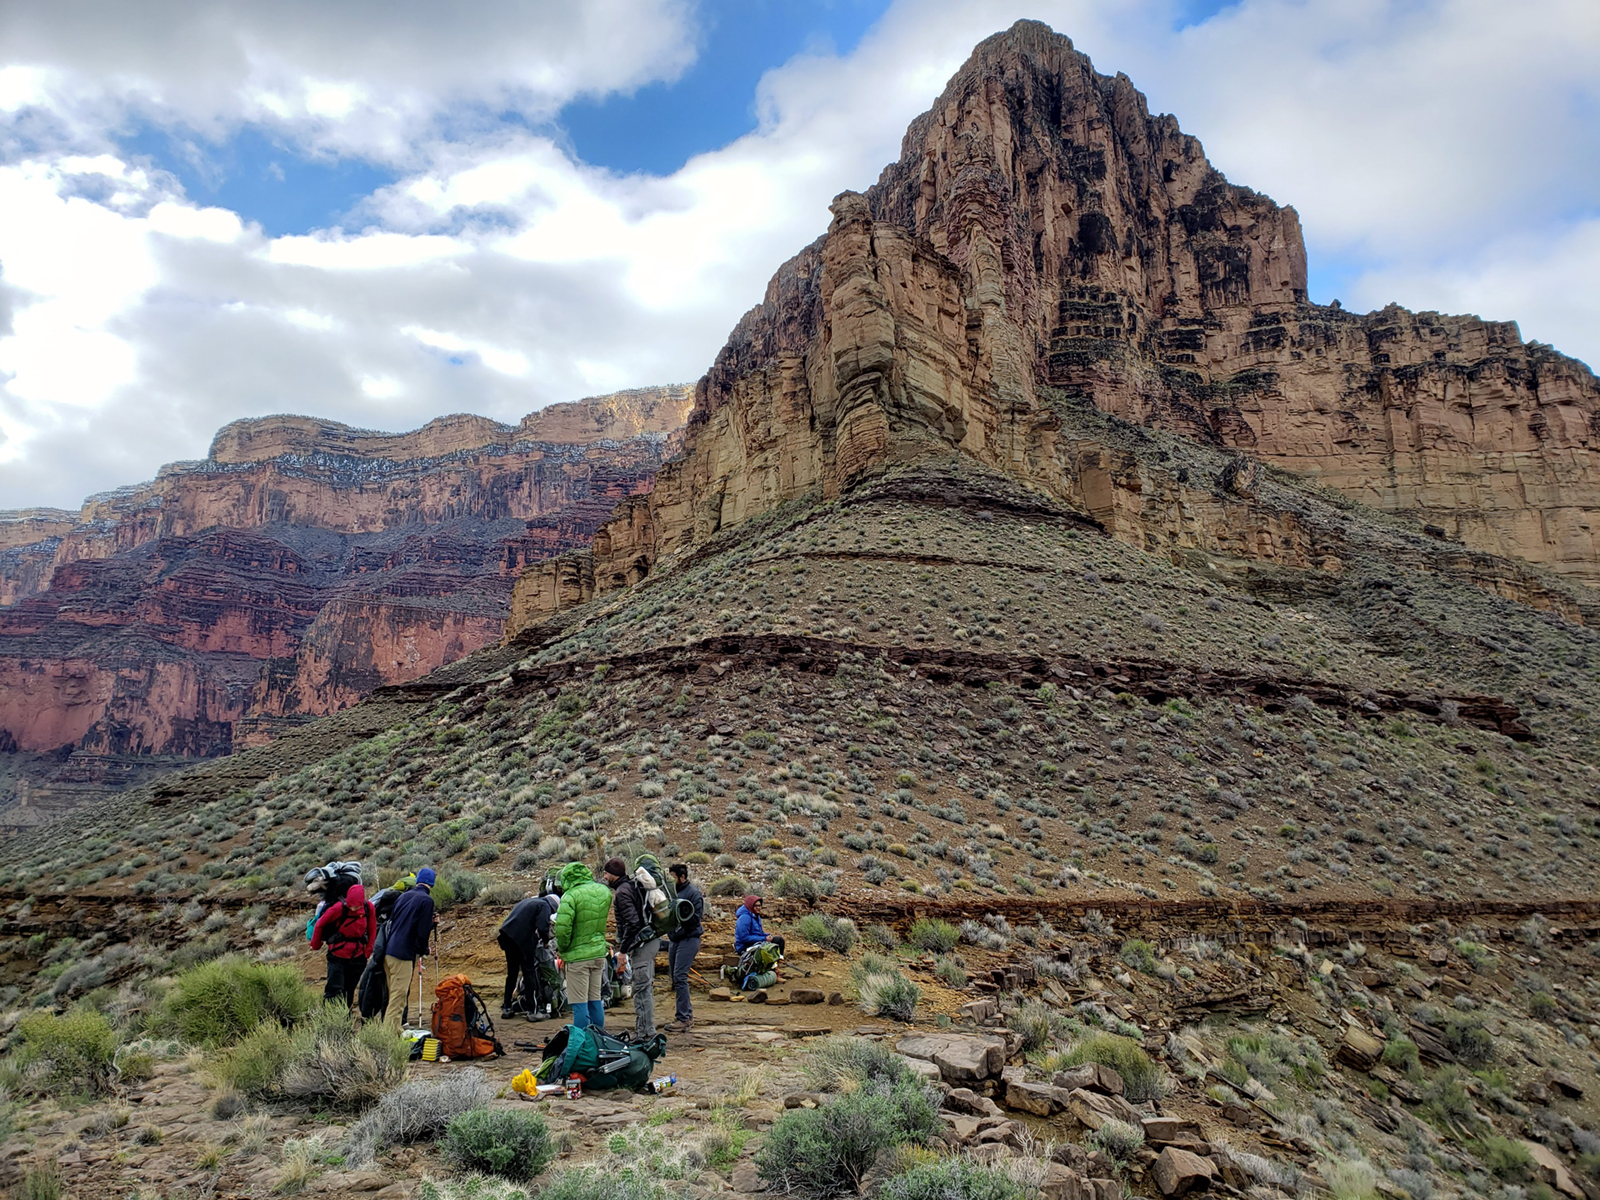 UML students hike at the Grand Canyon